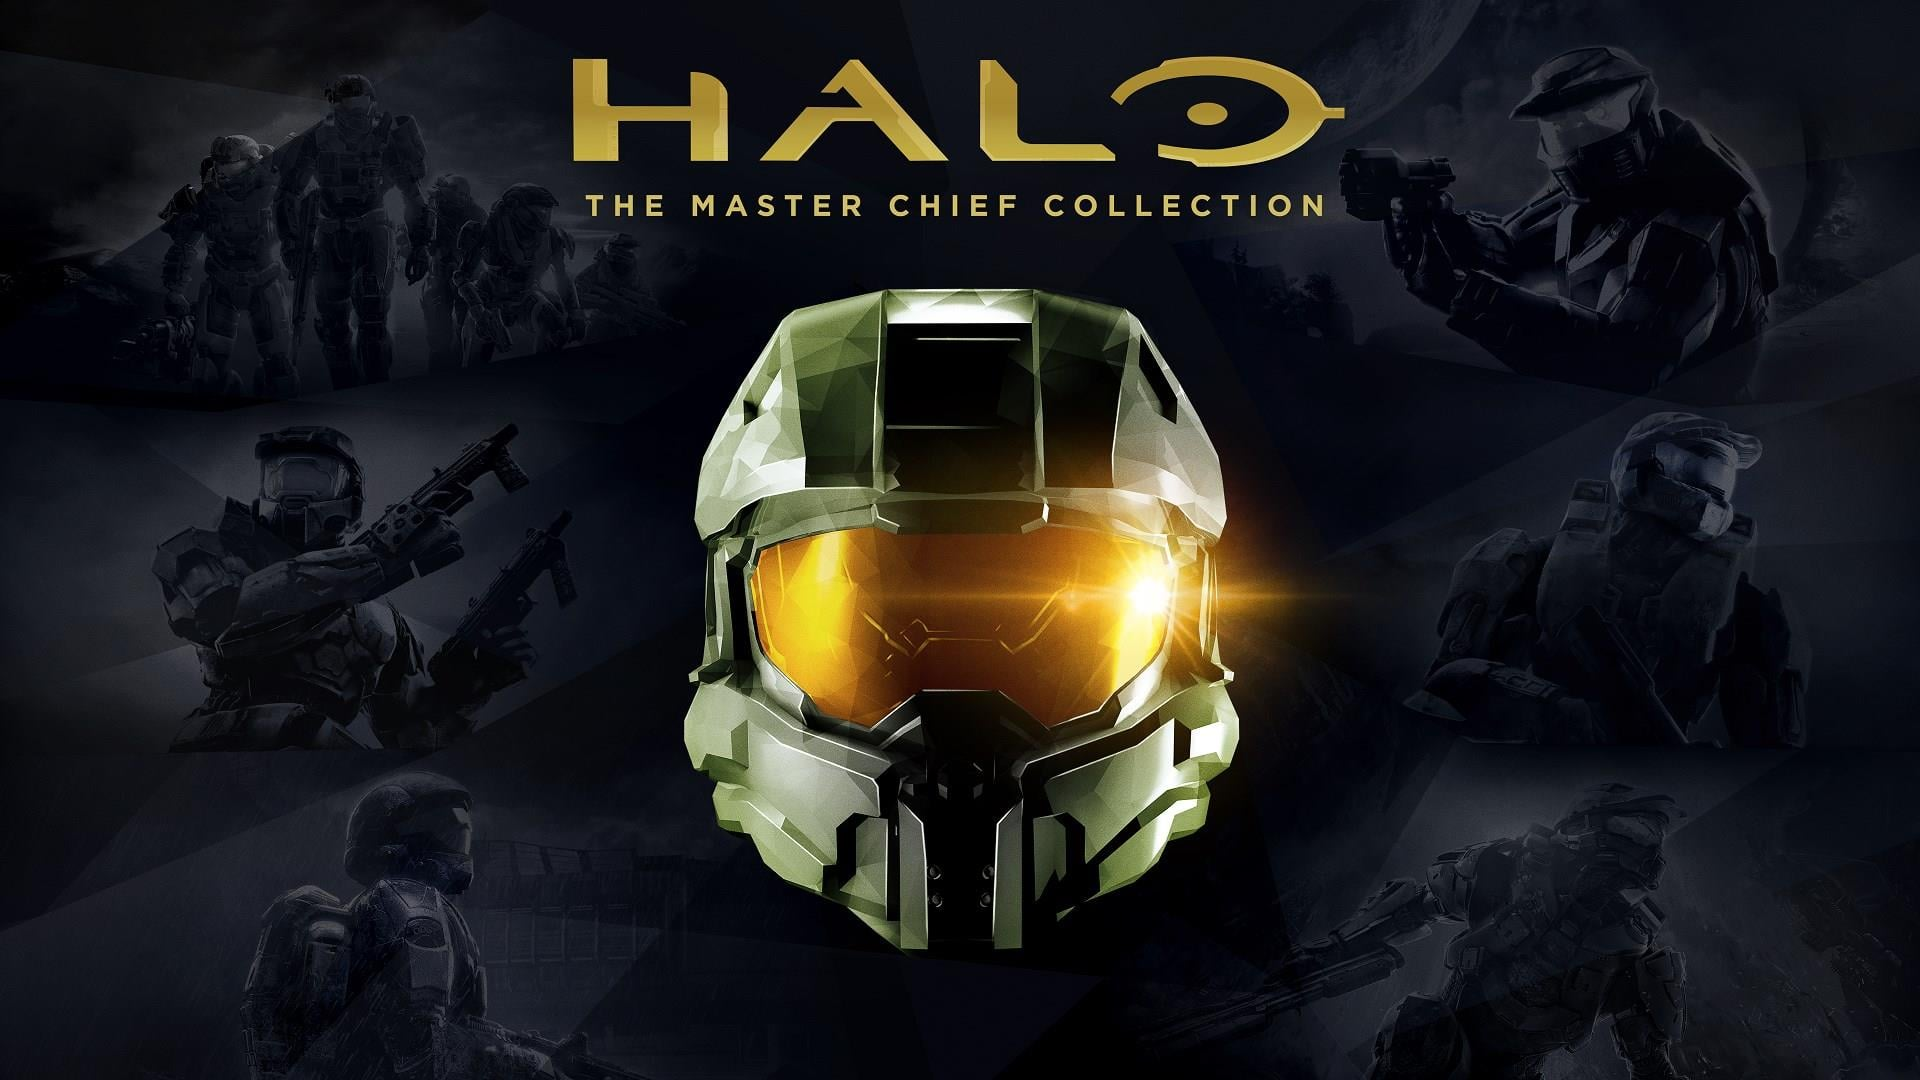 Halo: The Master Chief Collection ~ TitledHeroArt